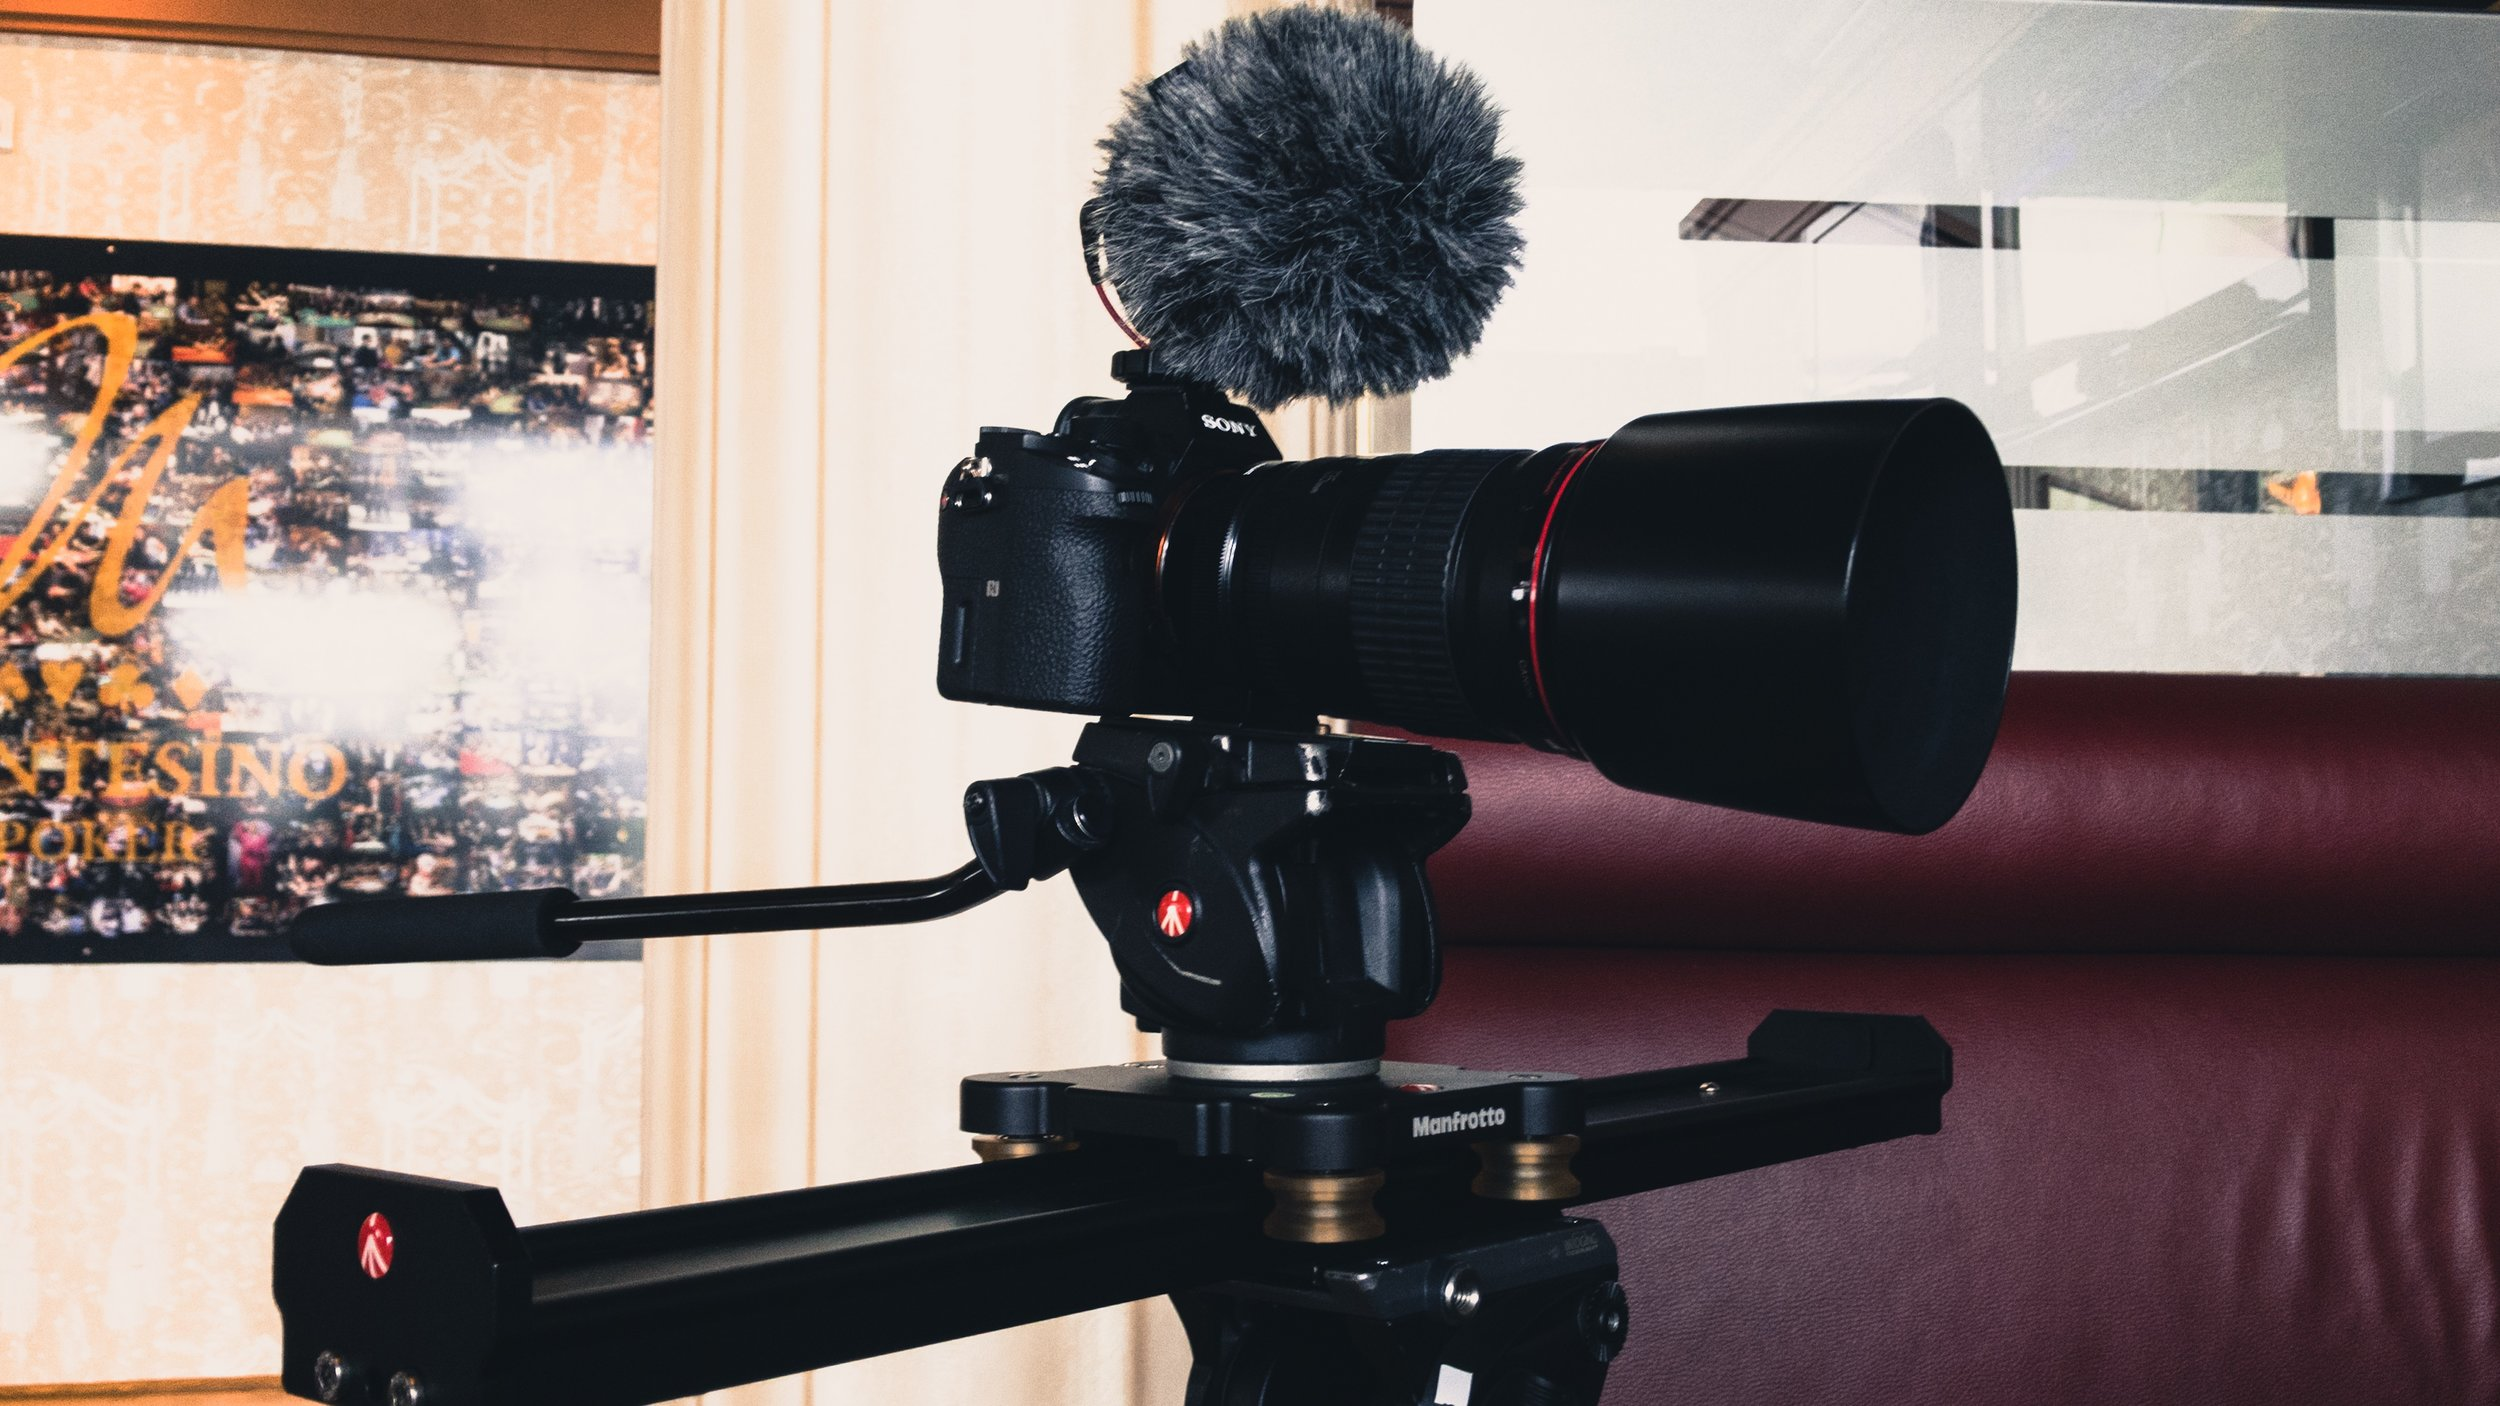 Manfrotto Slider 60cm setup with Sony a7S II, Canon 135mm and Rode Videomicro